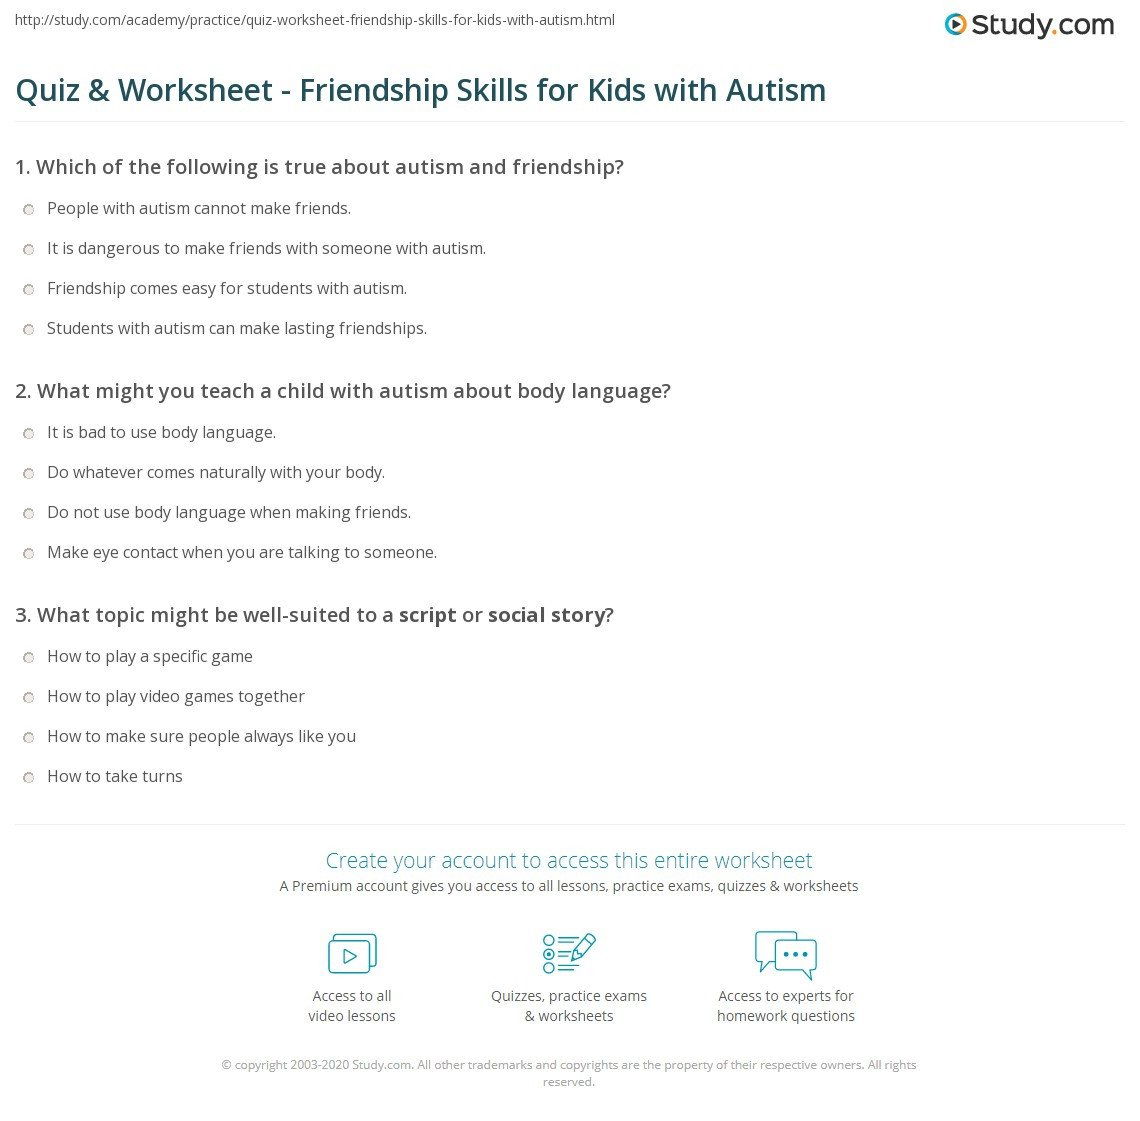 How to Make Friends Worksheet Quiz & Worksheet Friendship Skills for Kids with Autism